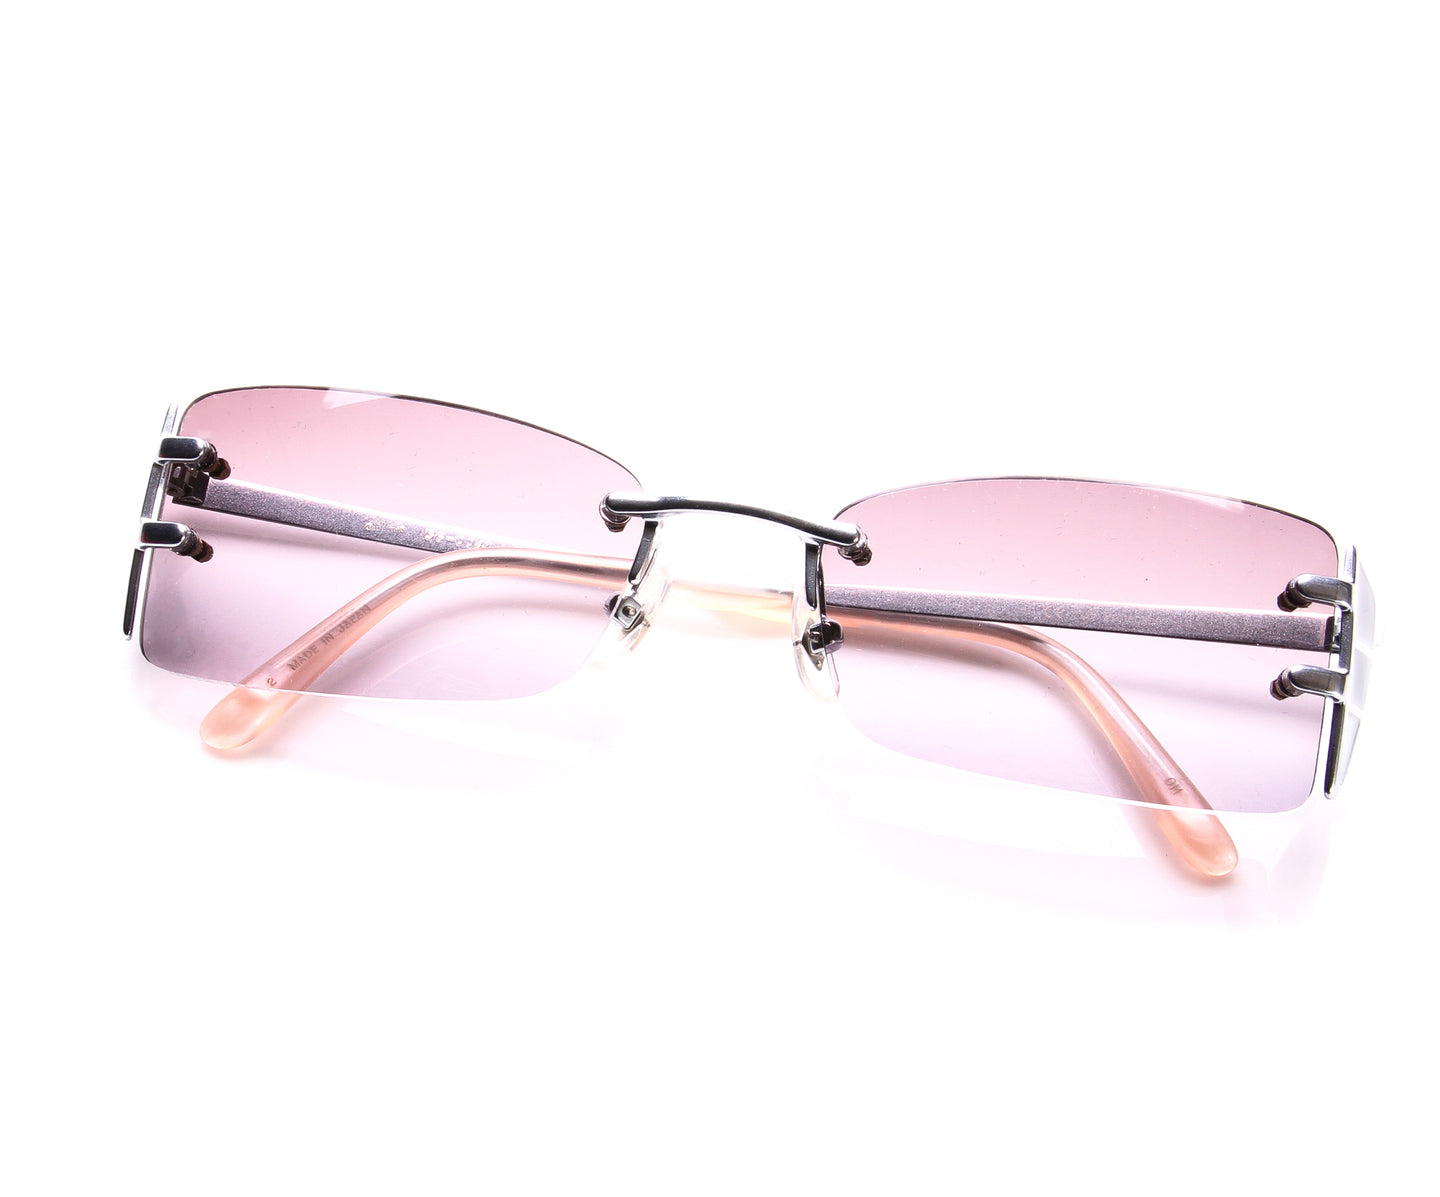 Jean Paul Gaultier 56 0041, Jean Paul Gaultier , glasses frames, eyeglasses online, eyeglass frames, mens glasses, womens glasses, buy glasses online, designer eyeglasses, vintage sunglasses, retro sunglasses, vintage glasses, sunglass, eyeglass, glasses, lens, vintage frames company, vf